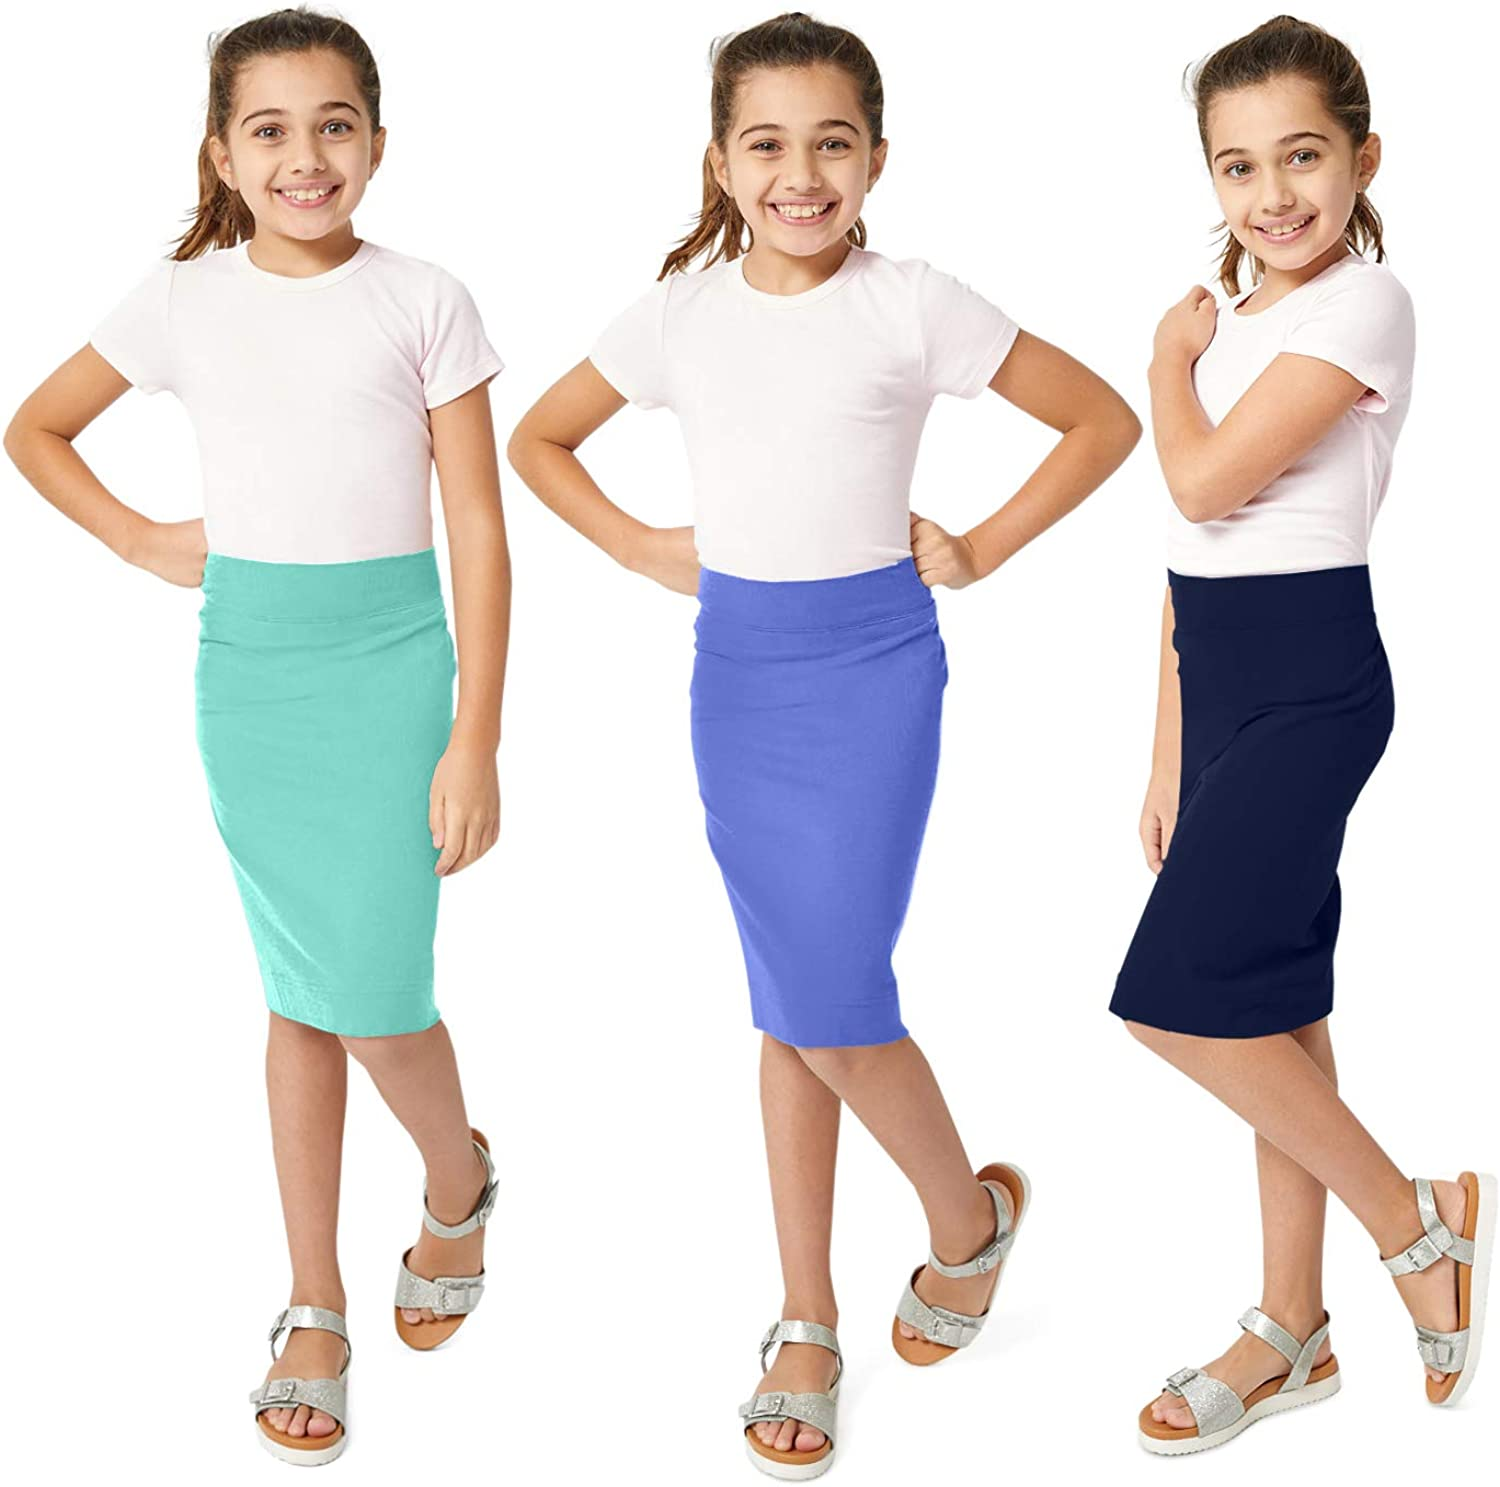 KIDPIK 3-Pack Pencil Skirts - Knee Length Skirt for Girls 4 Years & Up - Comfy Modest Clothing - 3 Colors/Set -: Clothing